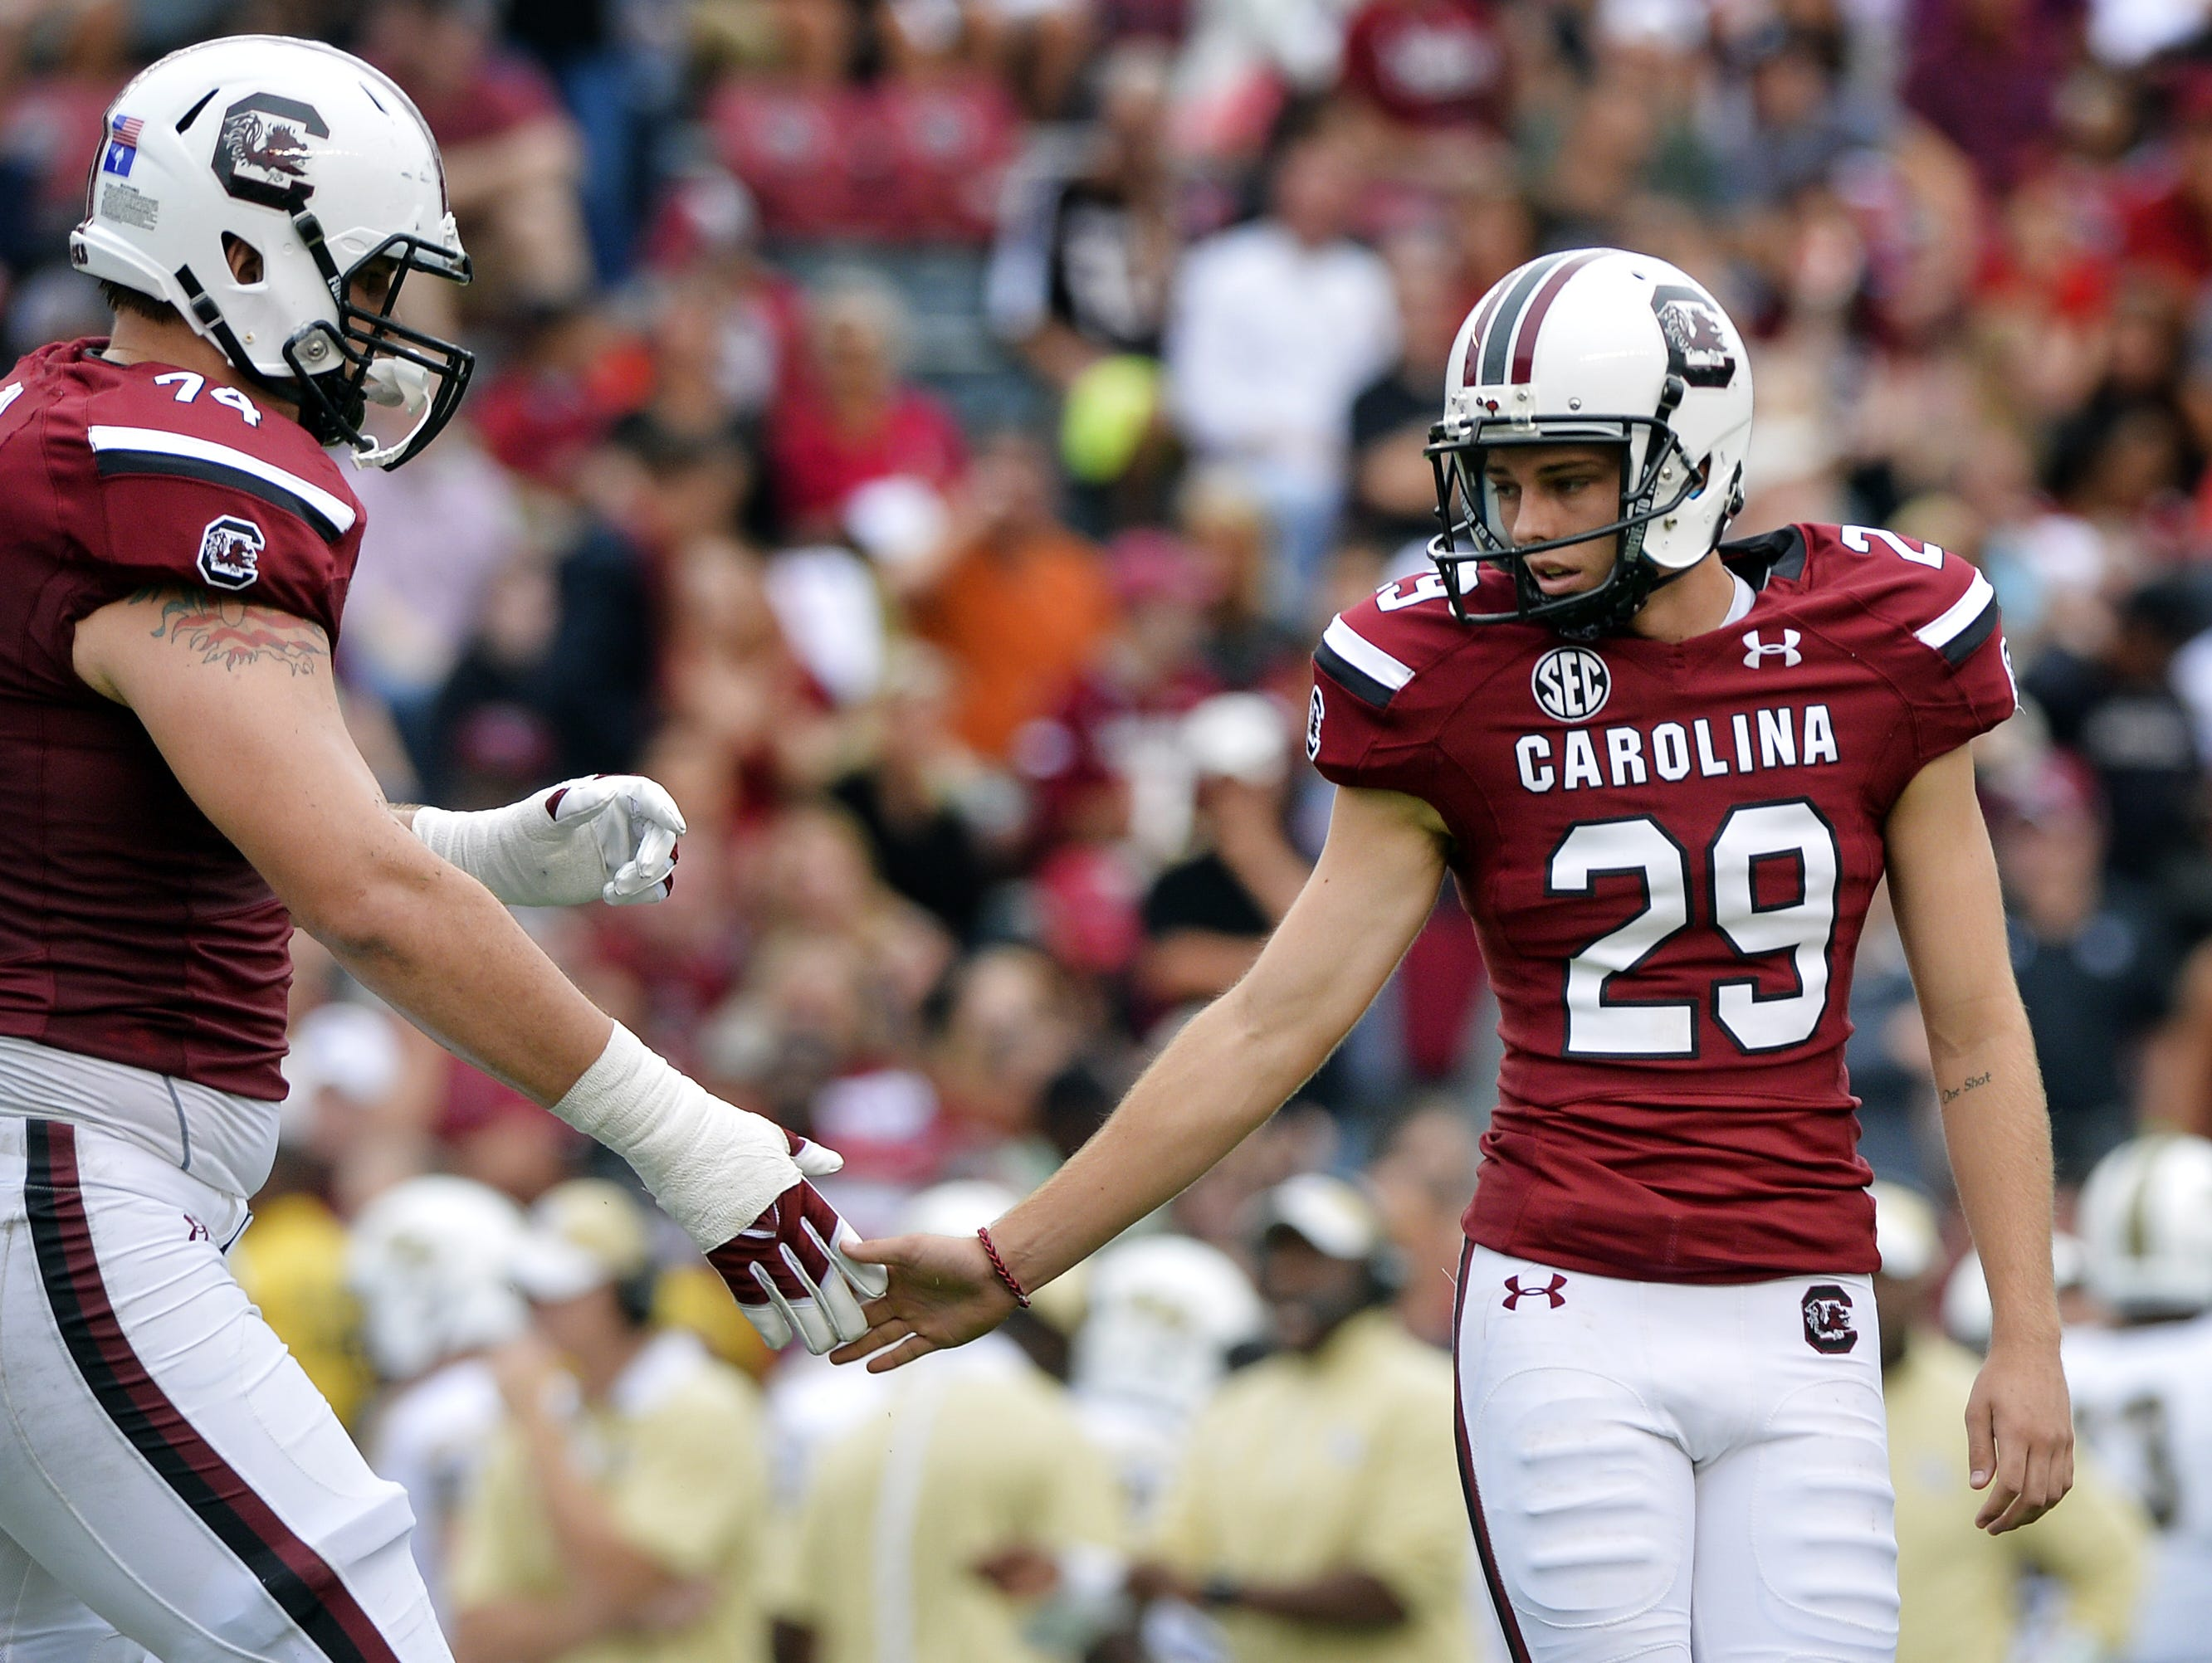 USC offensive lineman Mason Zandi, left, and kicker Elliot Fry (29), shown after a field goal in 2015, were two of the Gamecocks' participants in a pro day Tuesday.